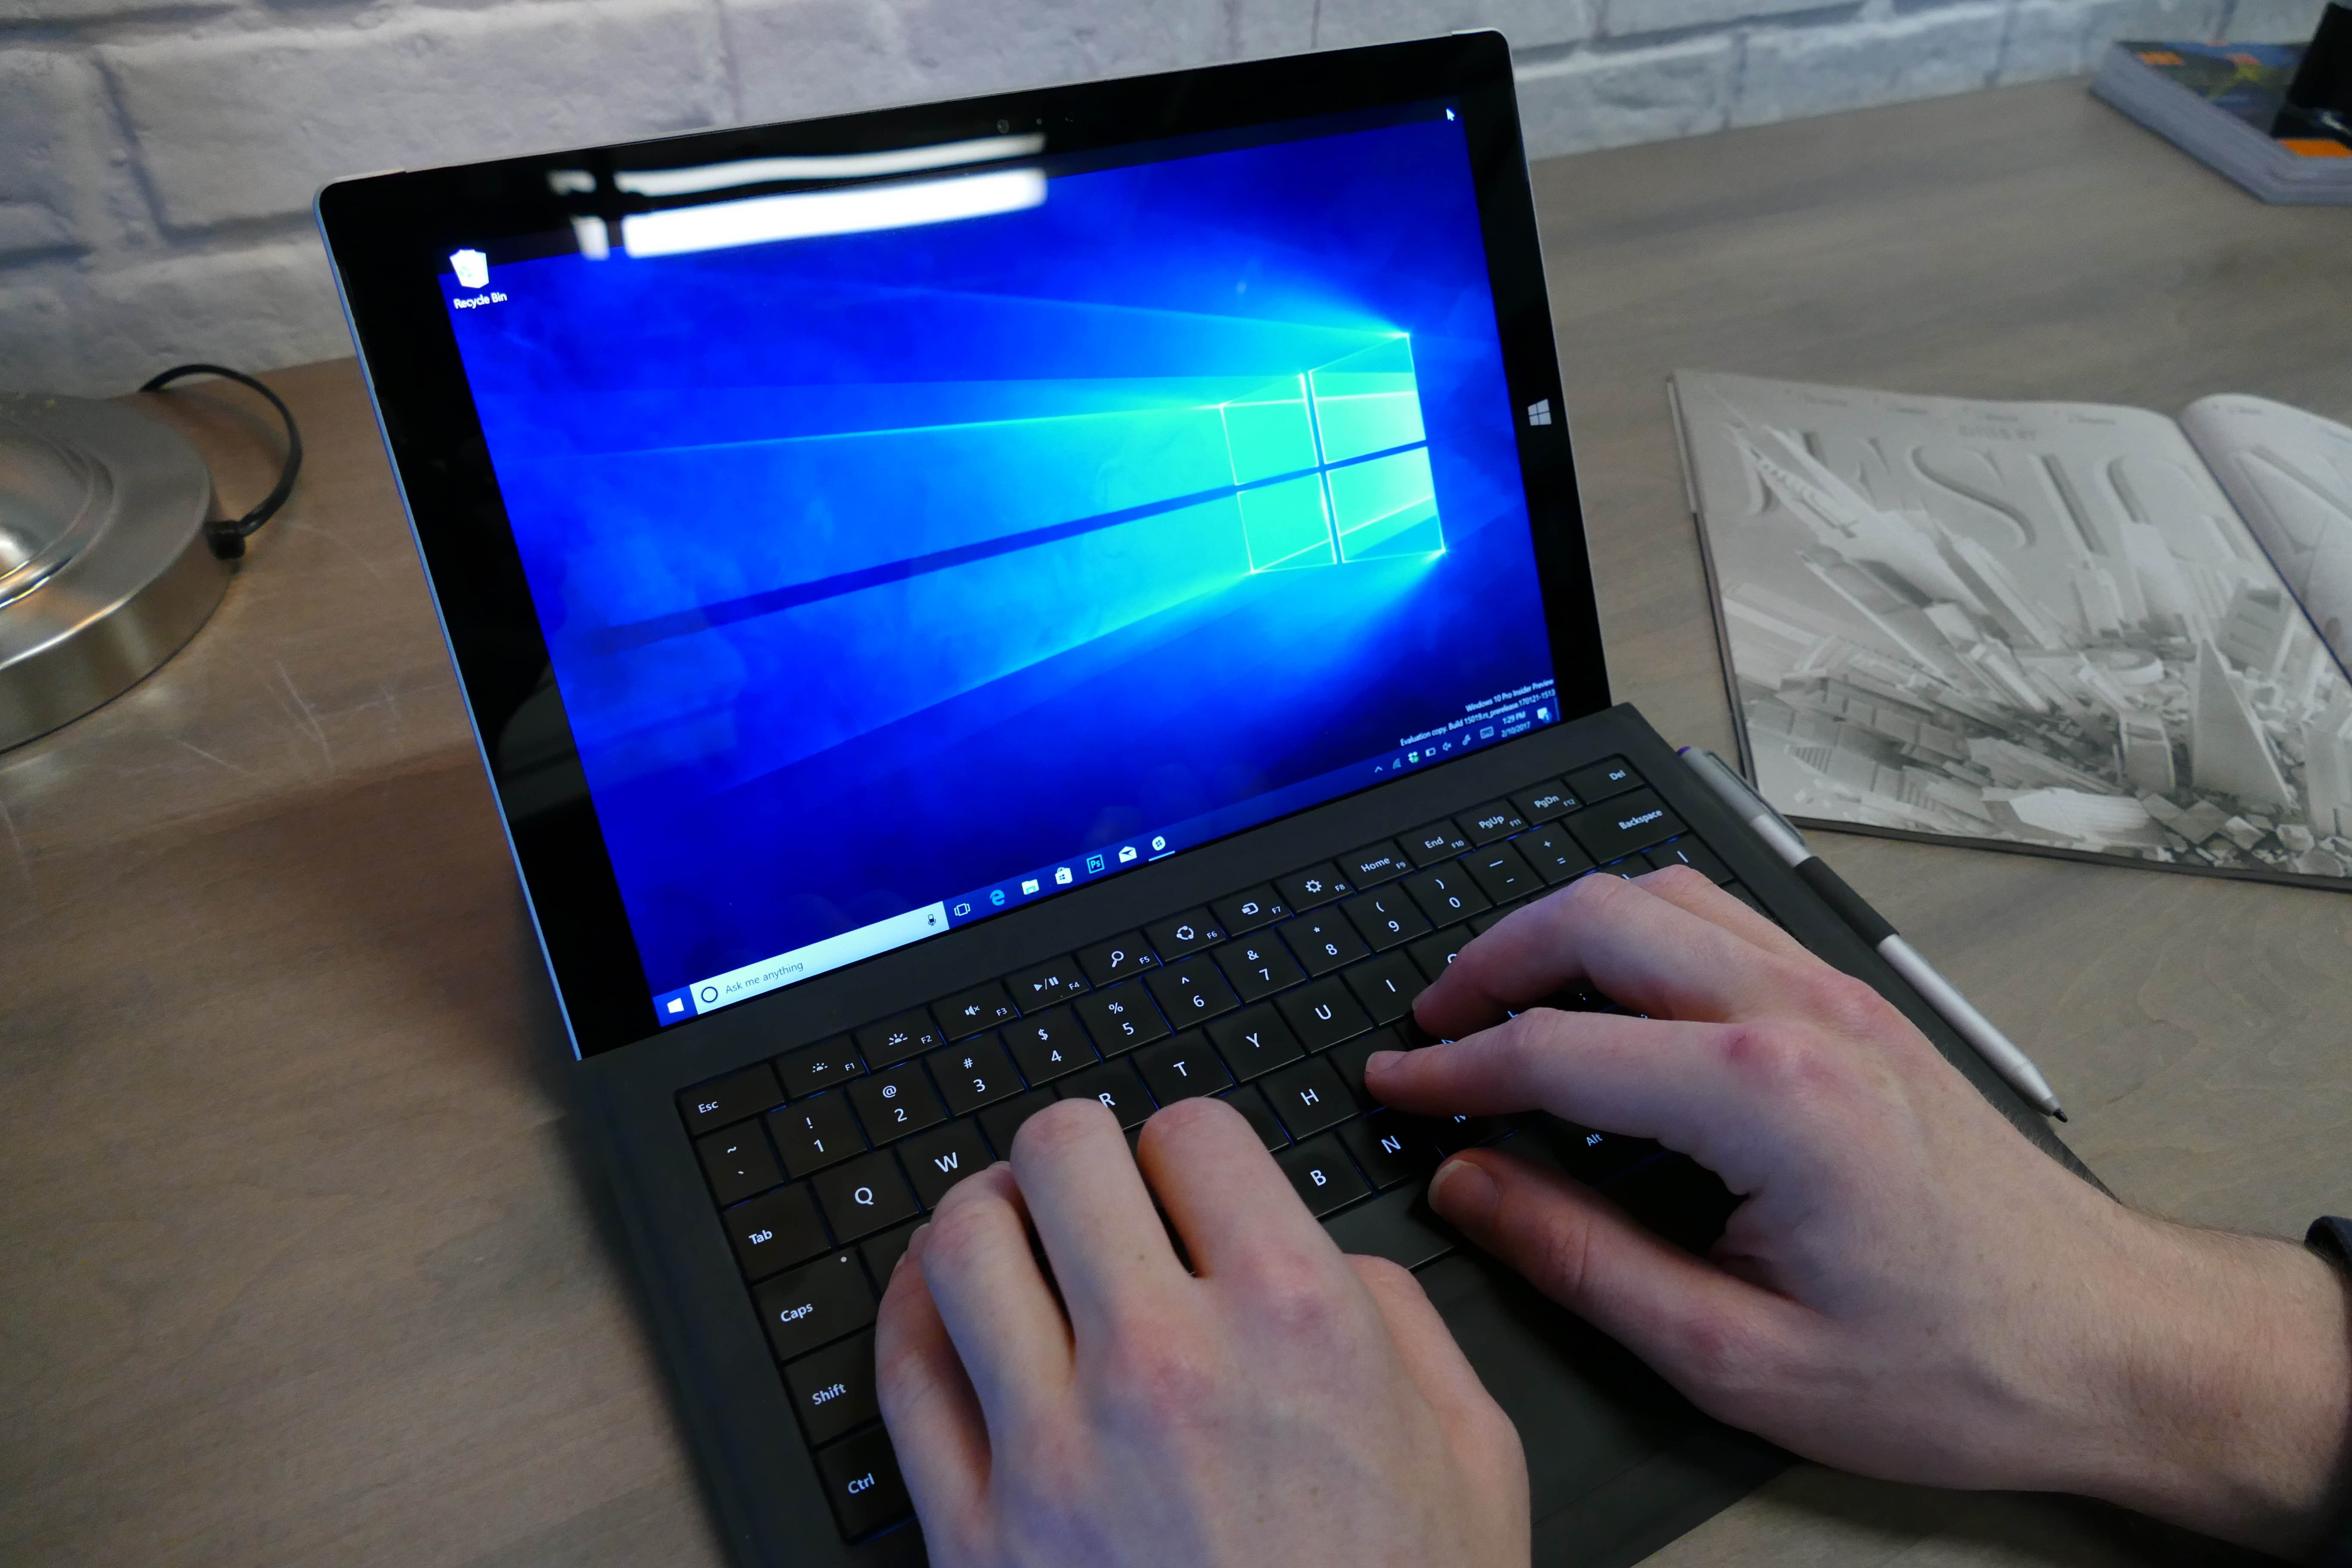 Consumer Reports Surface Laptop Flap Is Based On Data